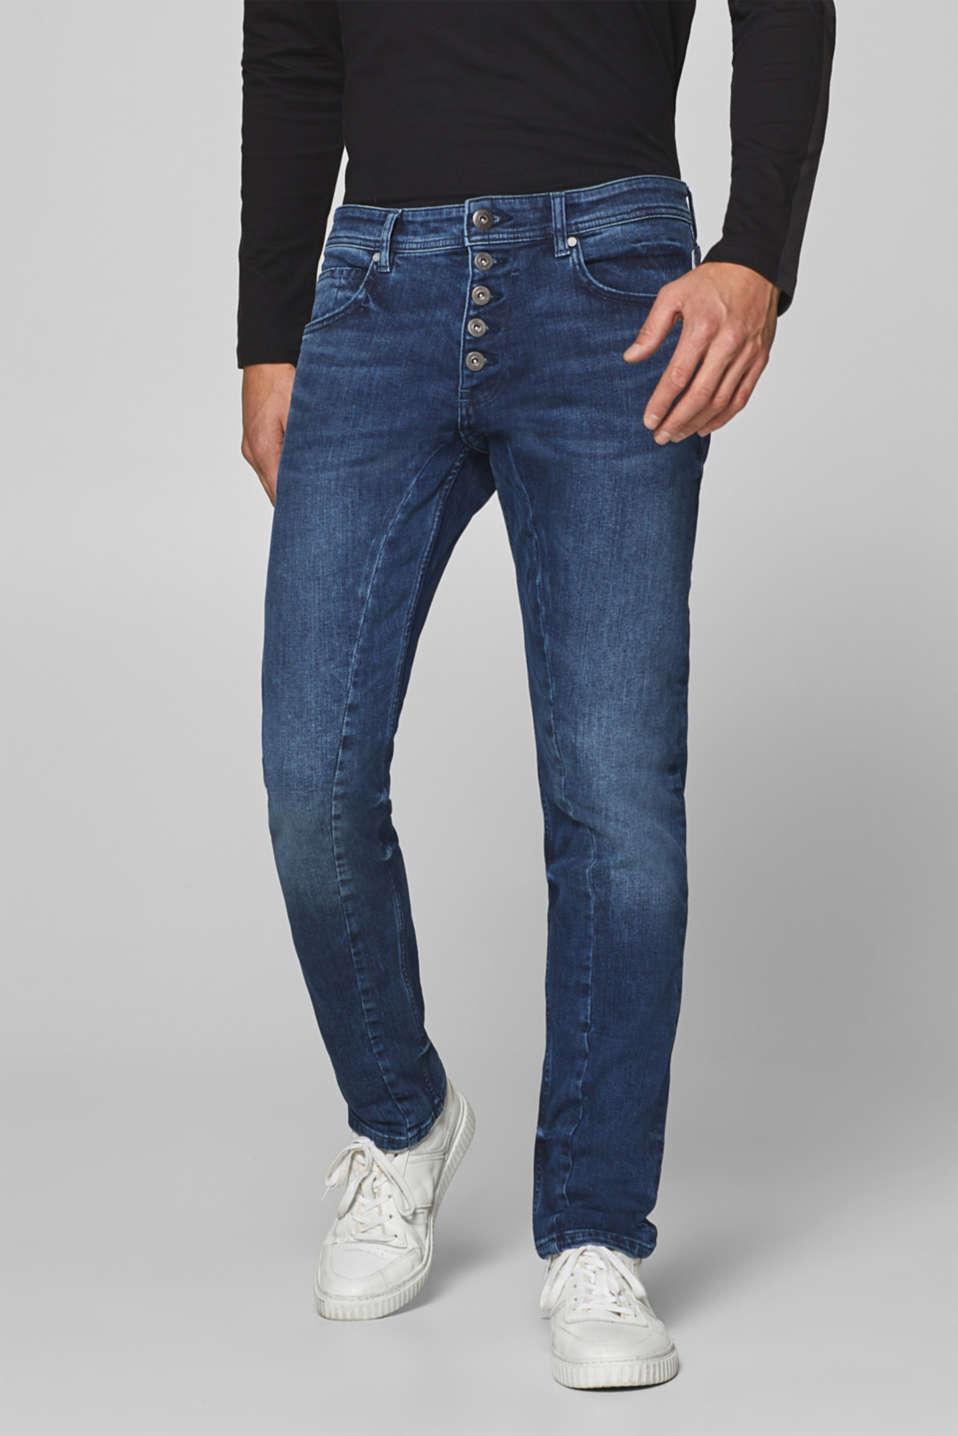 edc - Stretch jeans with a visible button placket